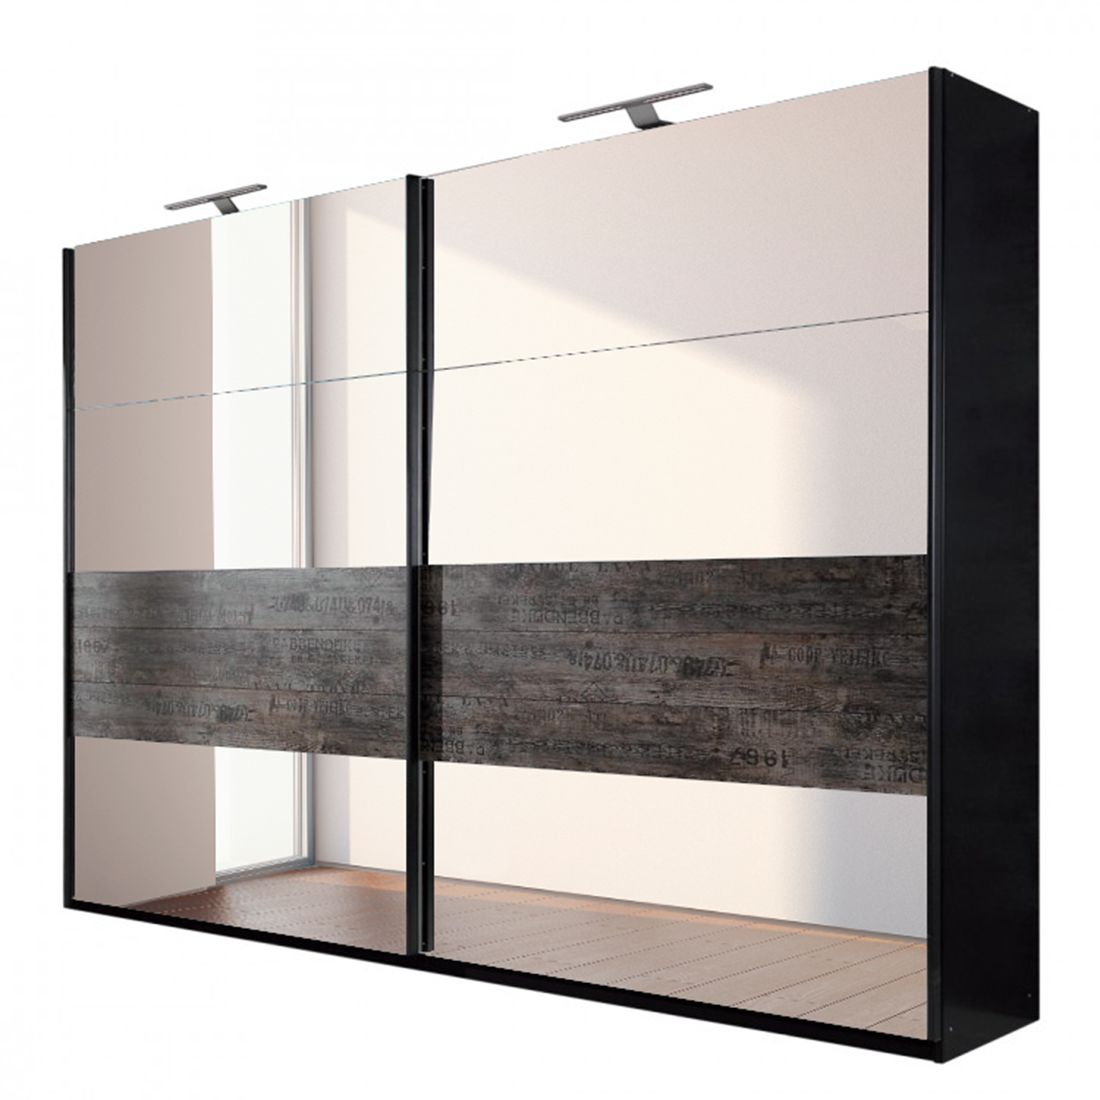 schwebet renschrank sumatra spiegelglas vintage braun schrankbreite 270 cm 2 t rig. Black Bedroom Furniture Sets. Home Design Ideas